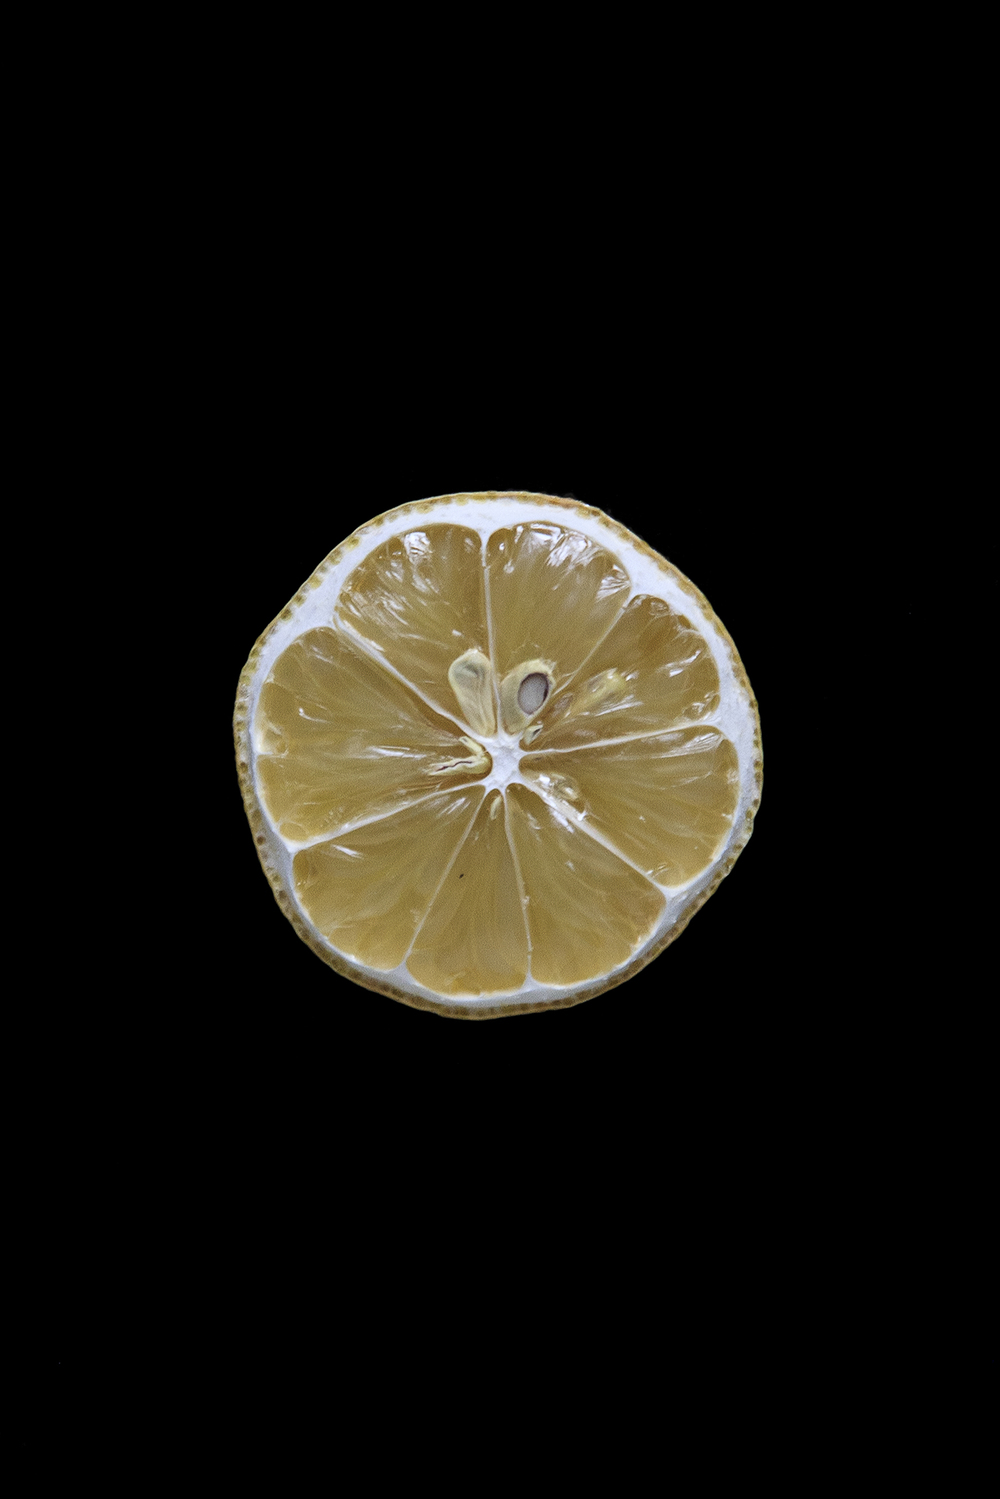 Lemon, Day Seven